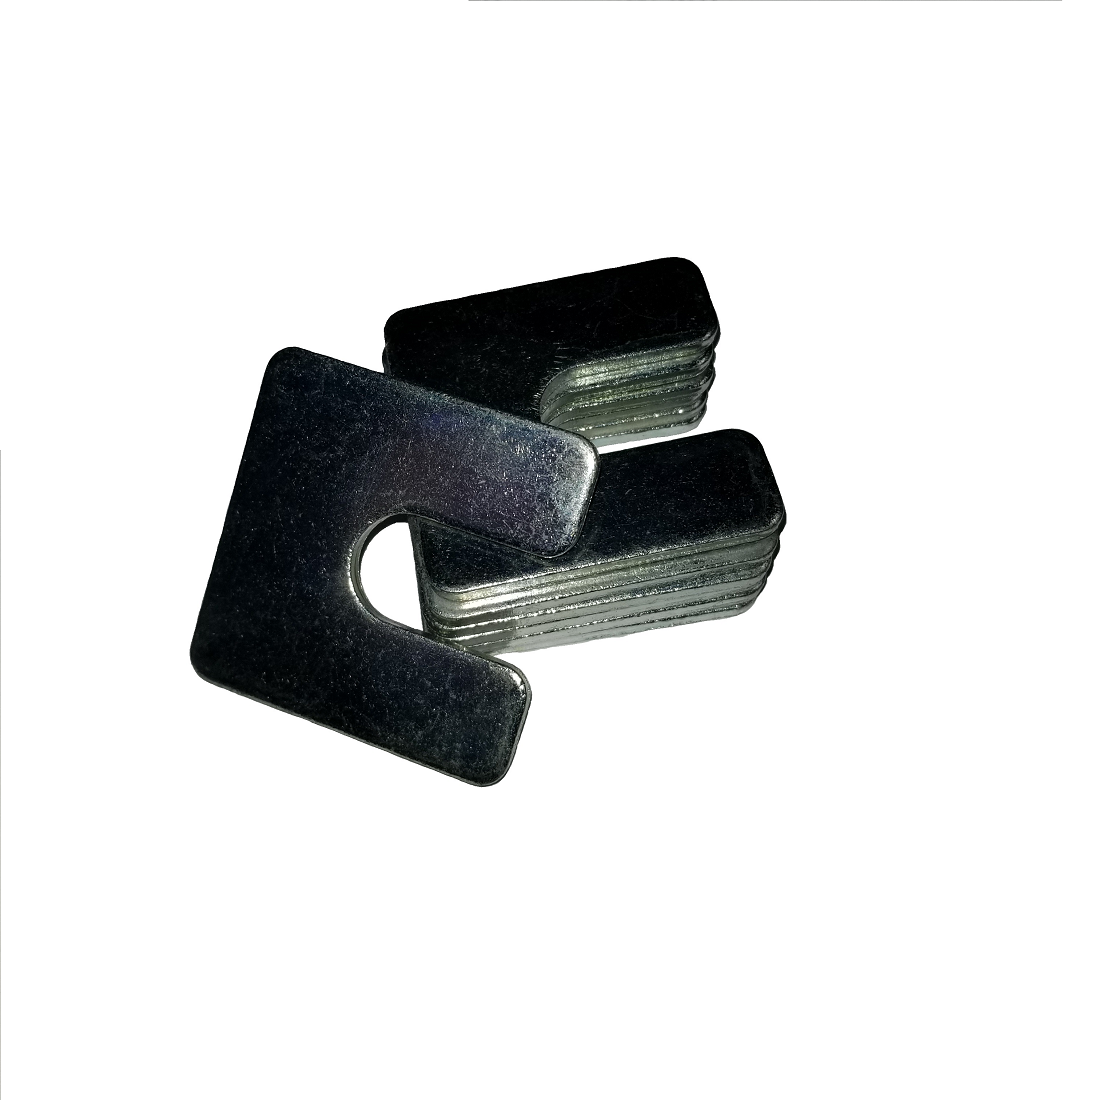 Slotted Square Washer - 0.812 ID, 2.000 OD, 0.015 Thick, Stainless - 300 Series